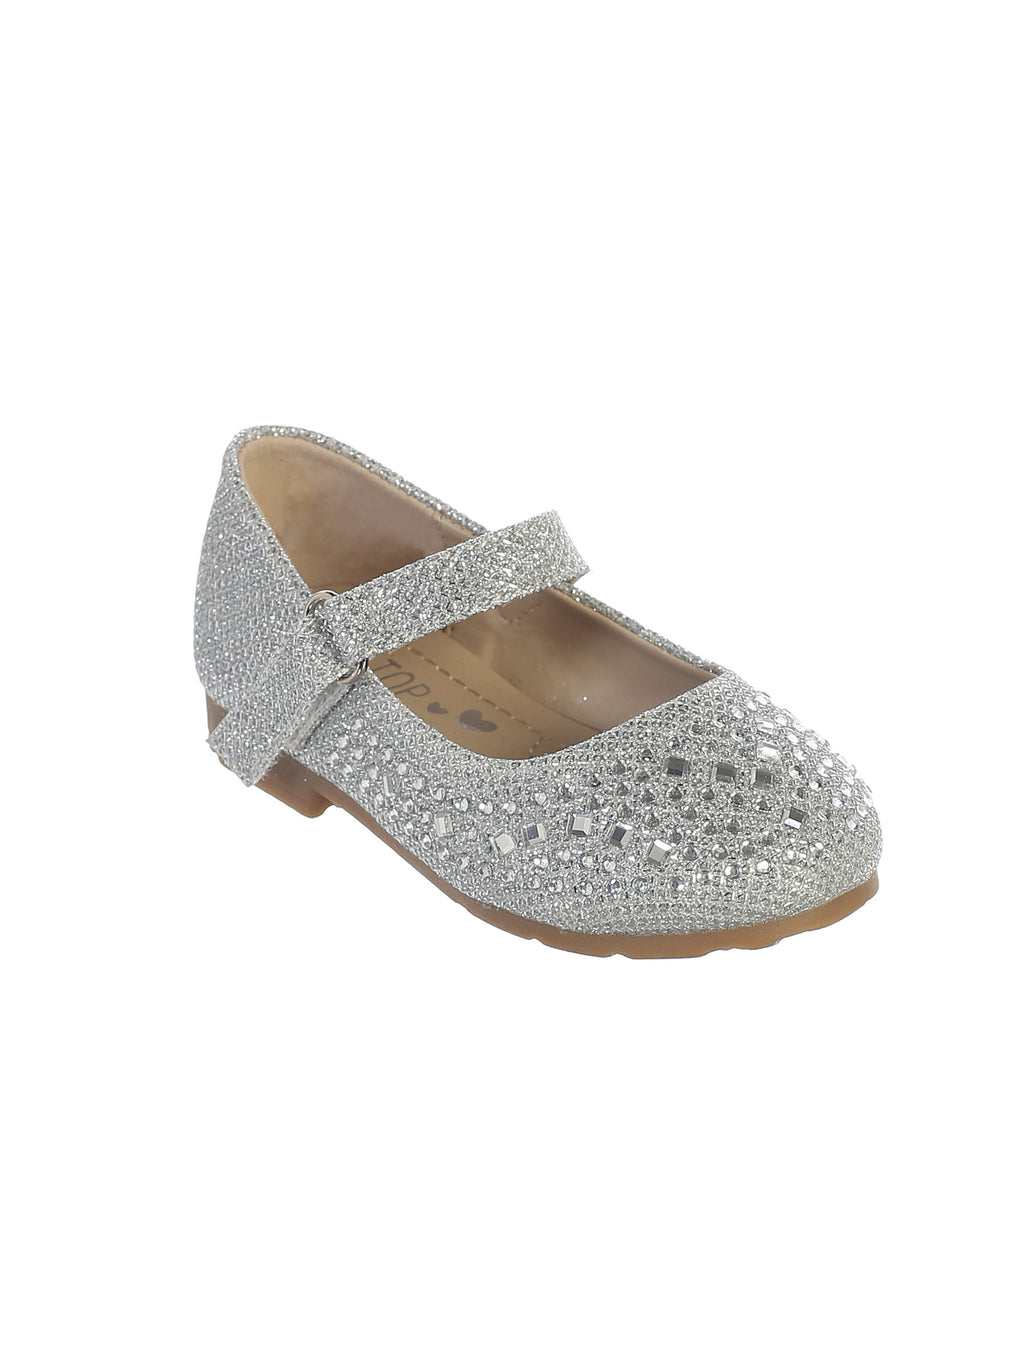 Silver Metallic Shoes with Sparkling Rhinestones